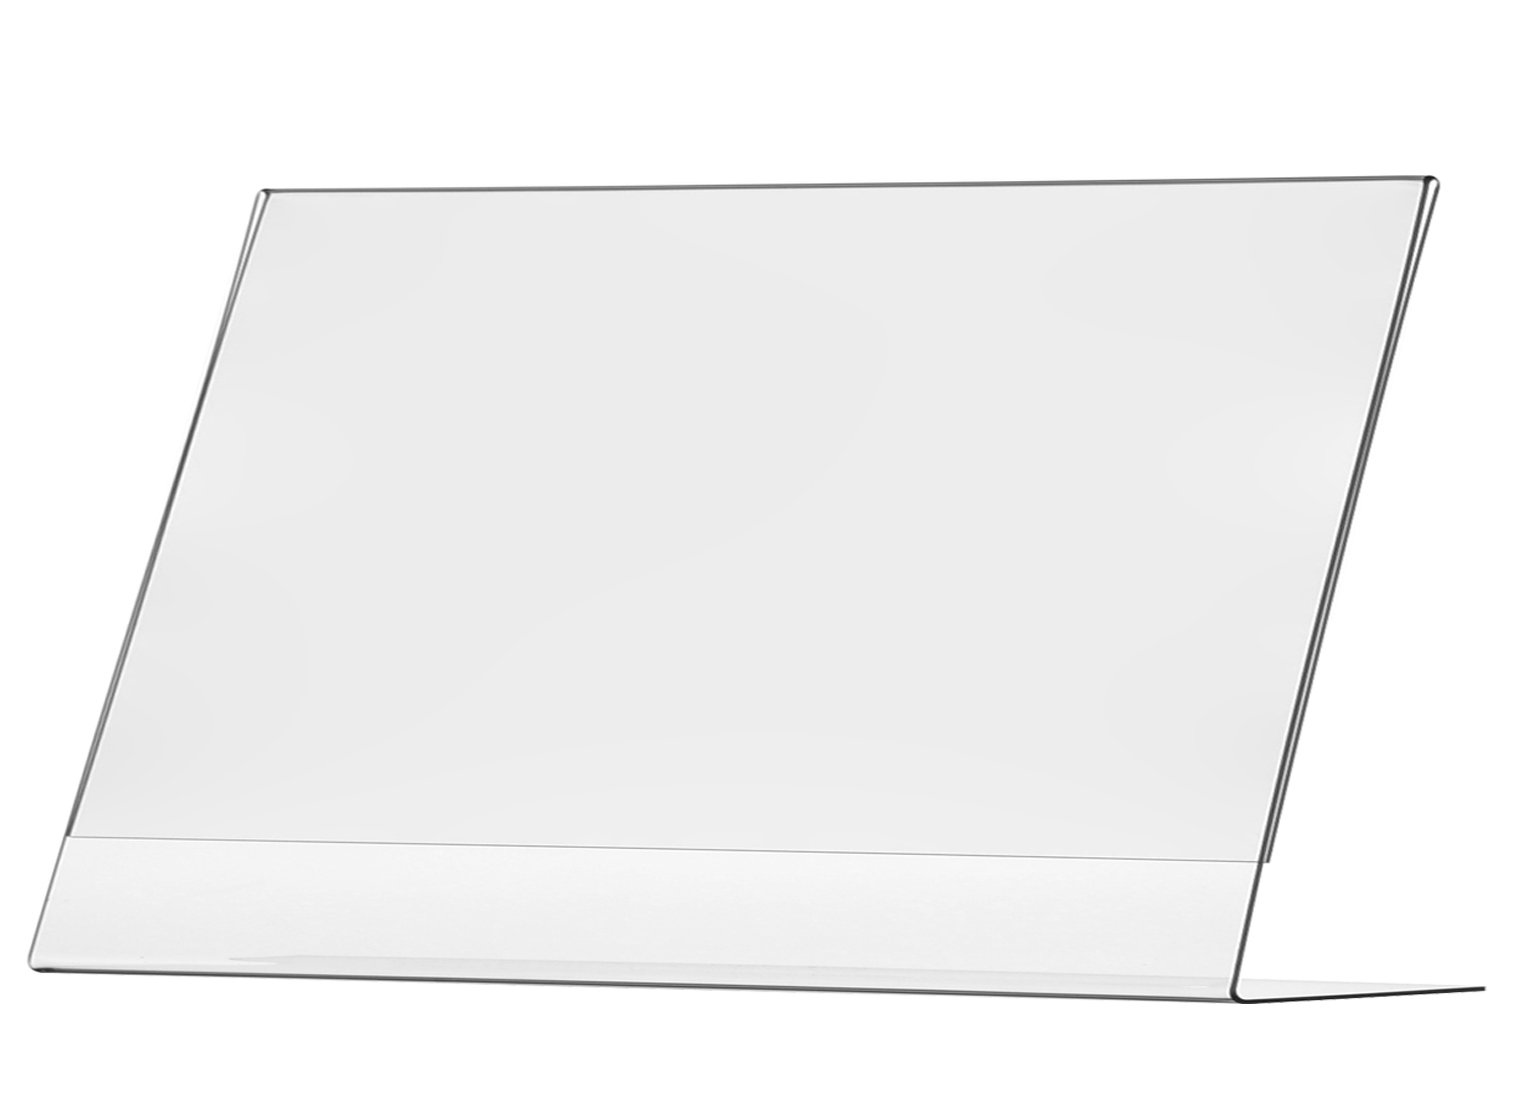 Marketing Holders Sign Holder 17''w x 11''h Table Top Side Loading Slant Back Lot of 5 by Marketing Holders (Image #1)